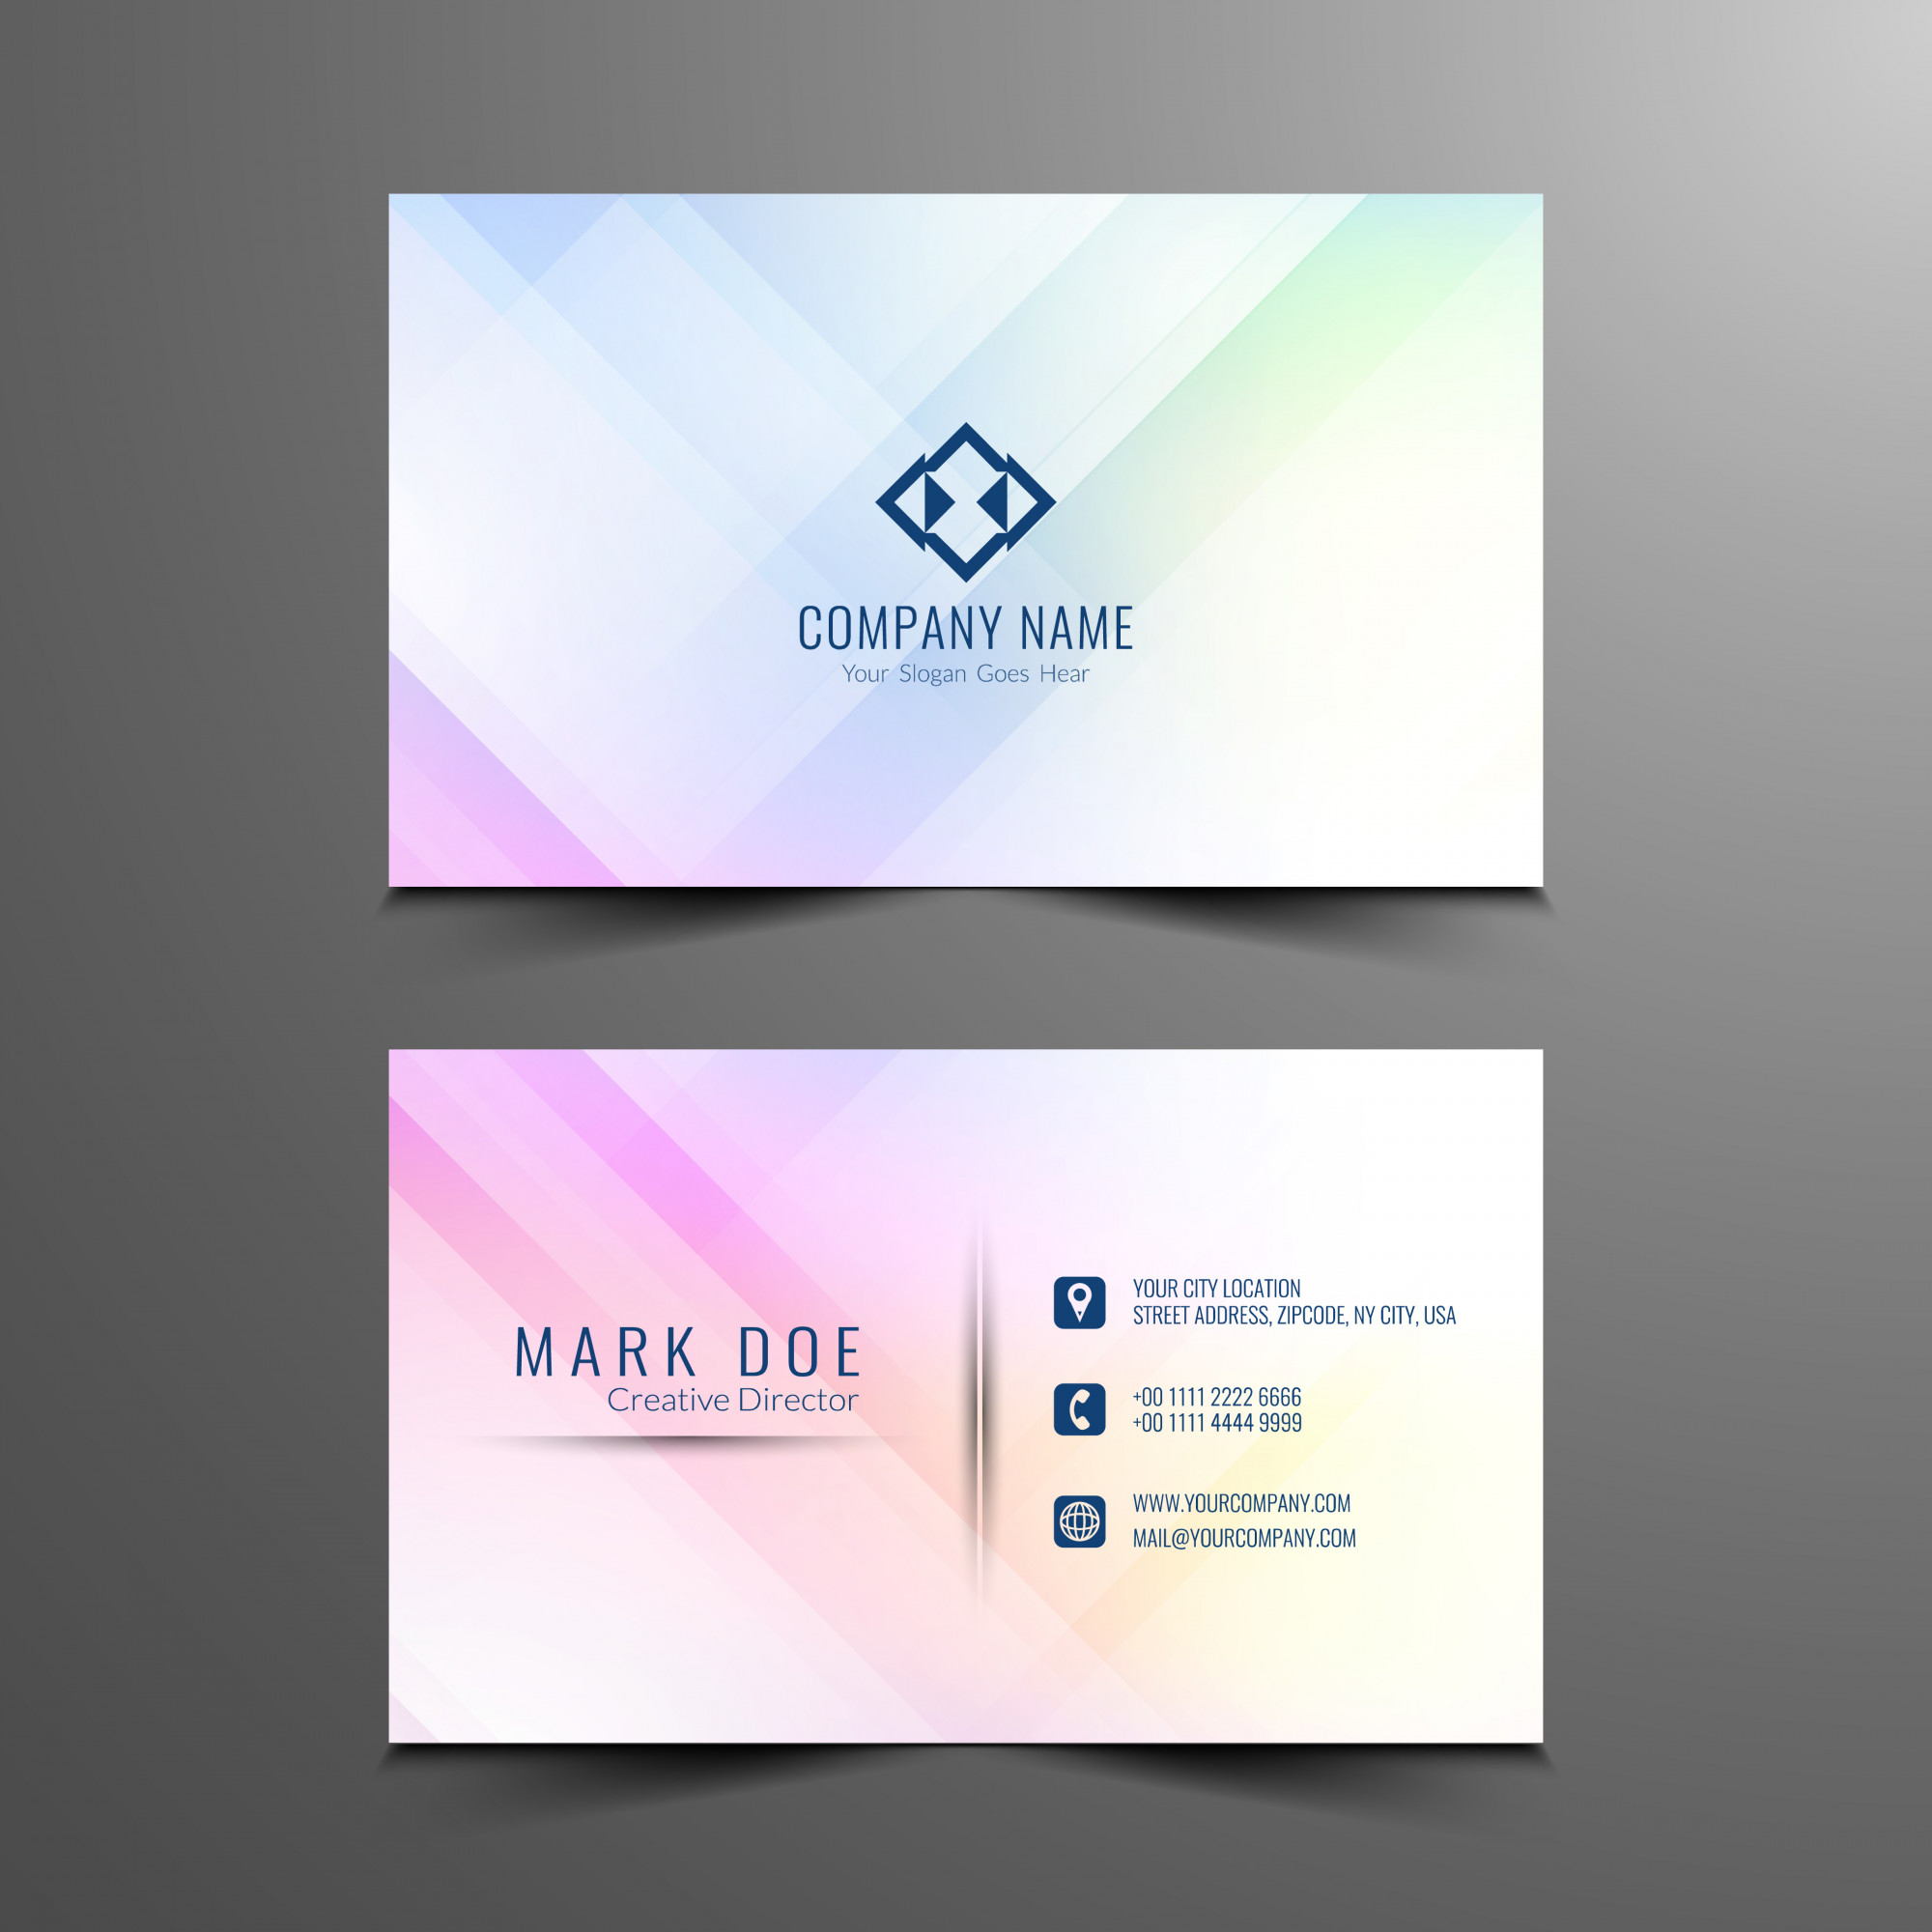 Business vectors 127000 free files in eps format abstract business card design template cheaphphosting Image collections